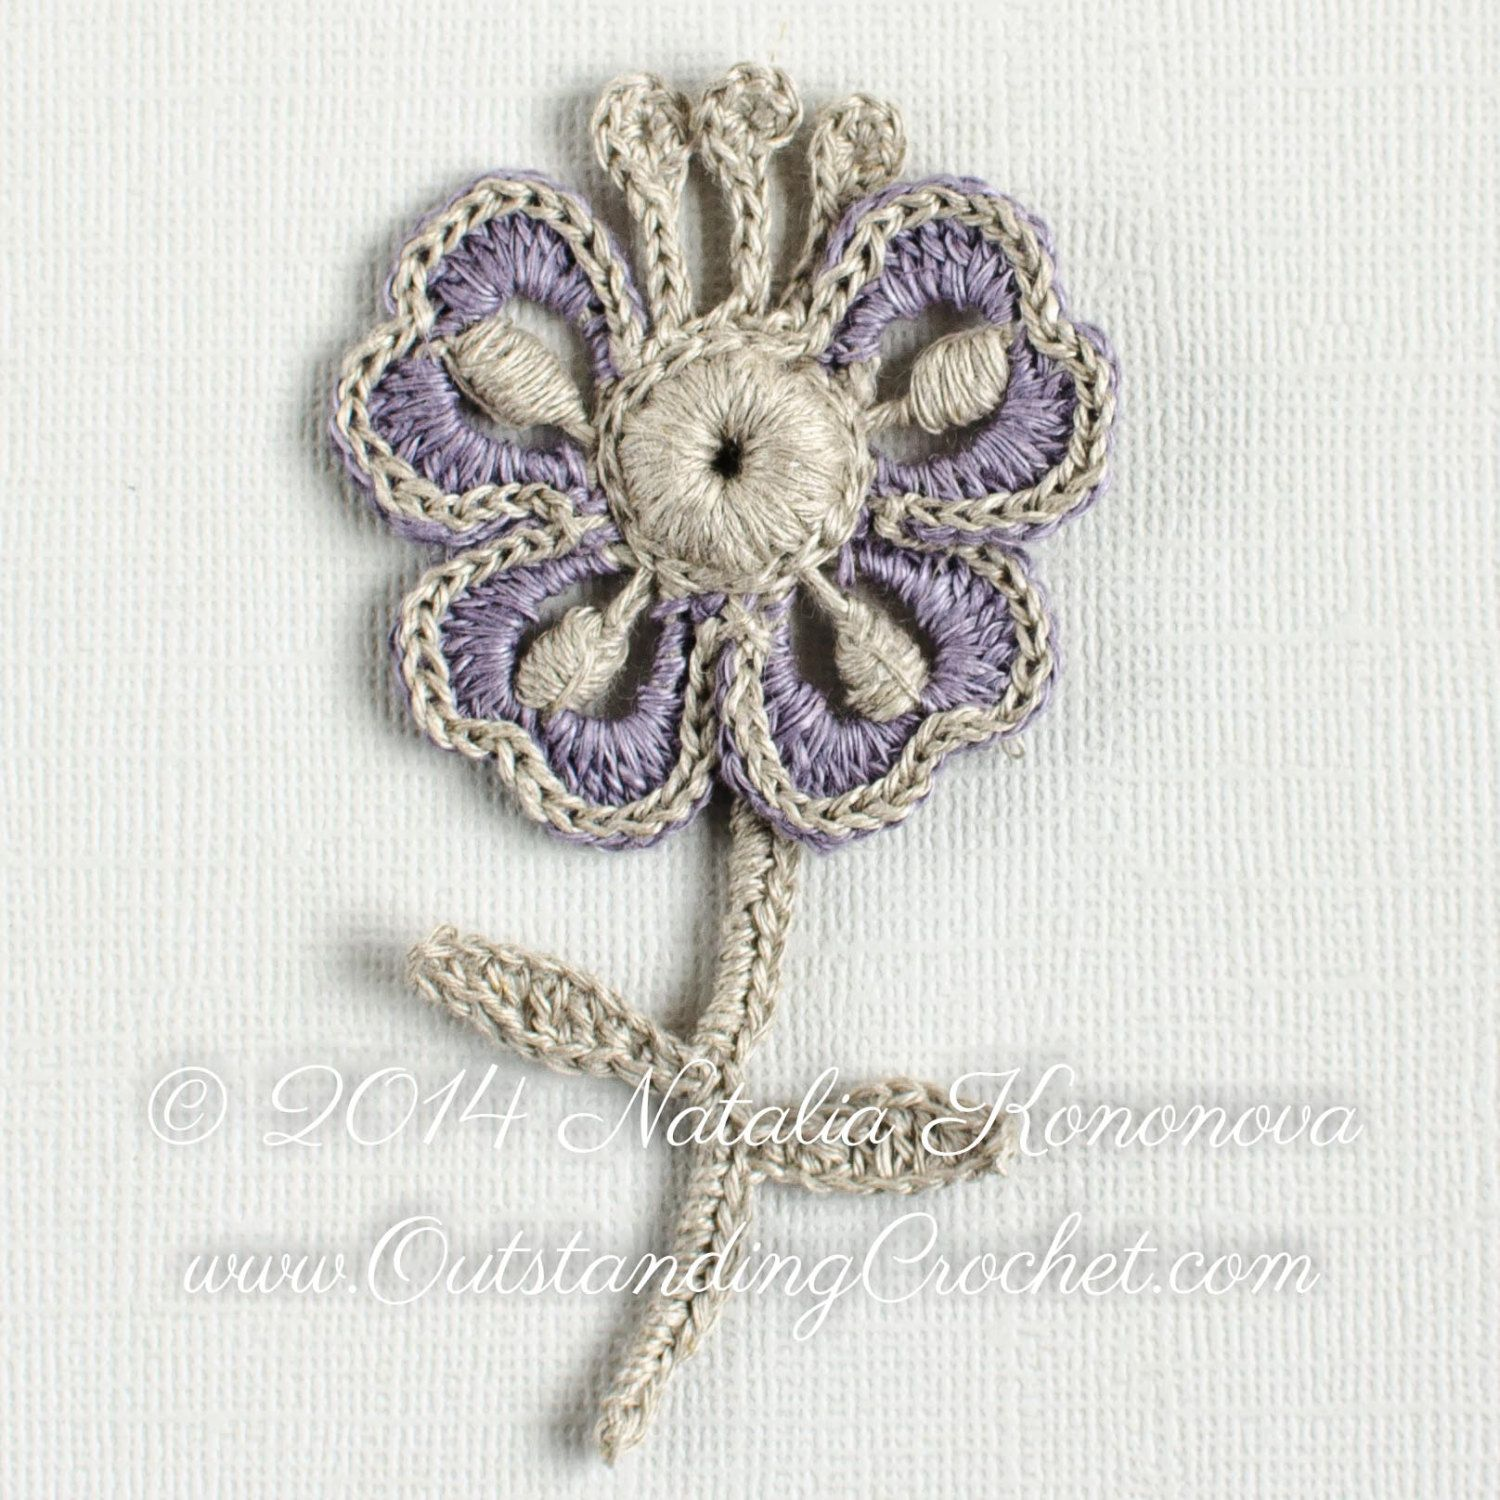 Irish crochet applique pattern wild geranium flower motif gift crochet flower motif applique pattern irish crochet motif pattern pdf instant download by outstandingcrochet dt1010fo